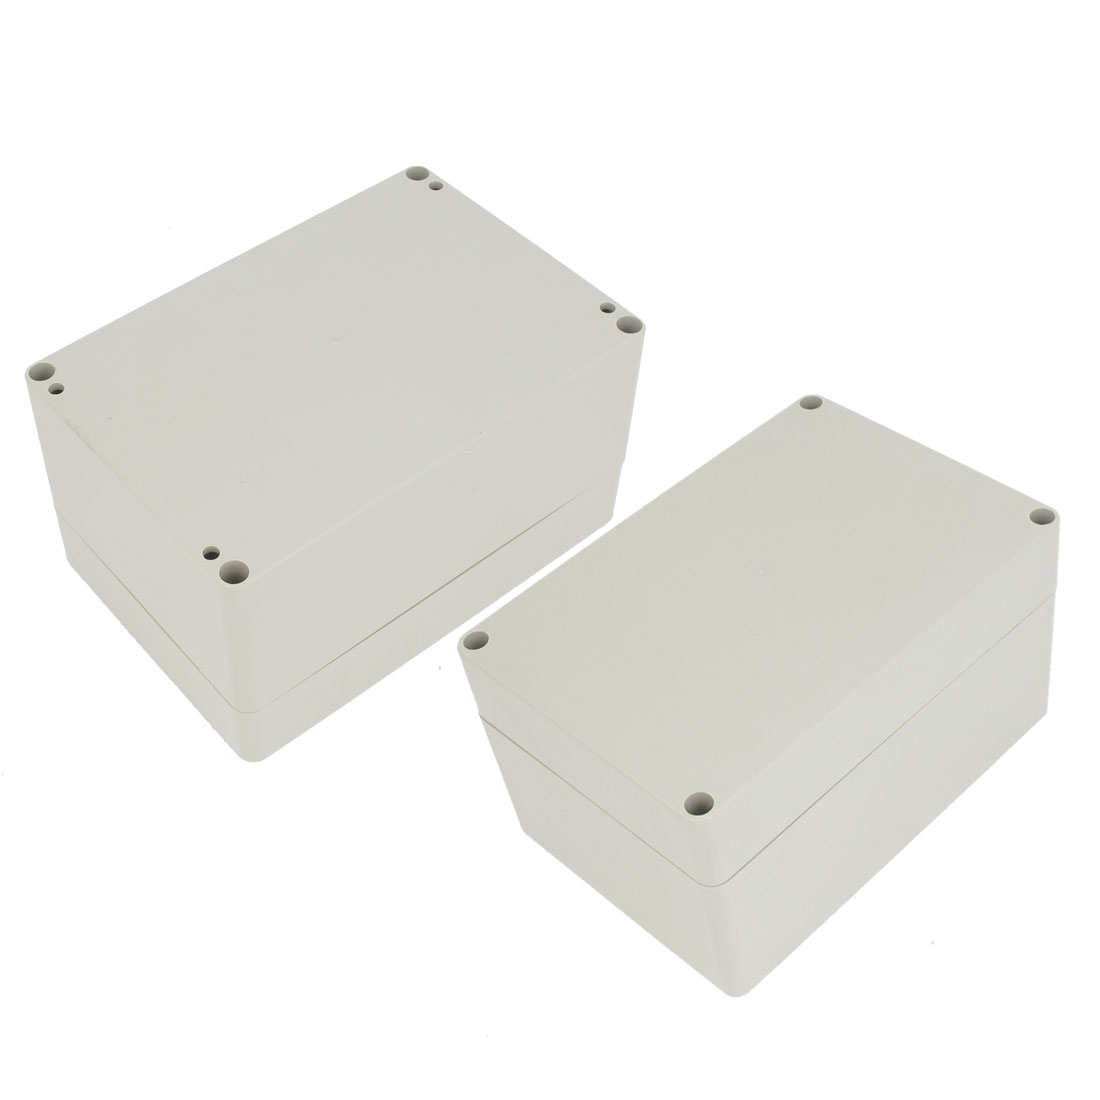 2 Pcs Plastic Mounted Power Protective Case Junction Box 159 x 109 x 91mm